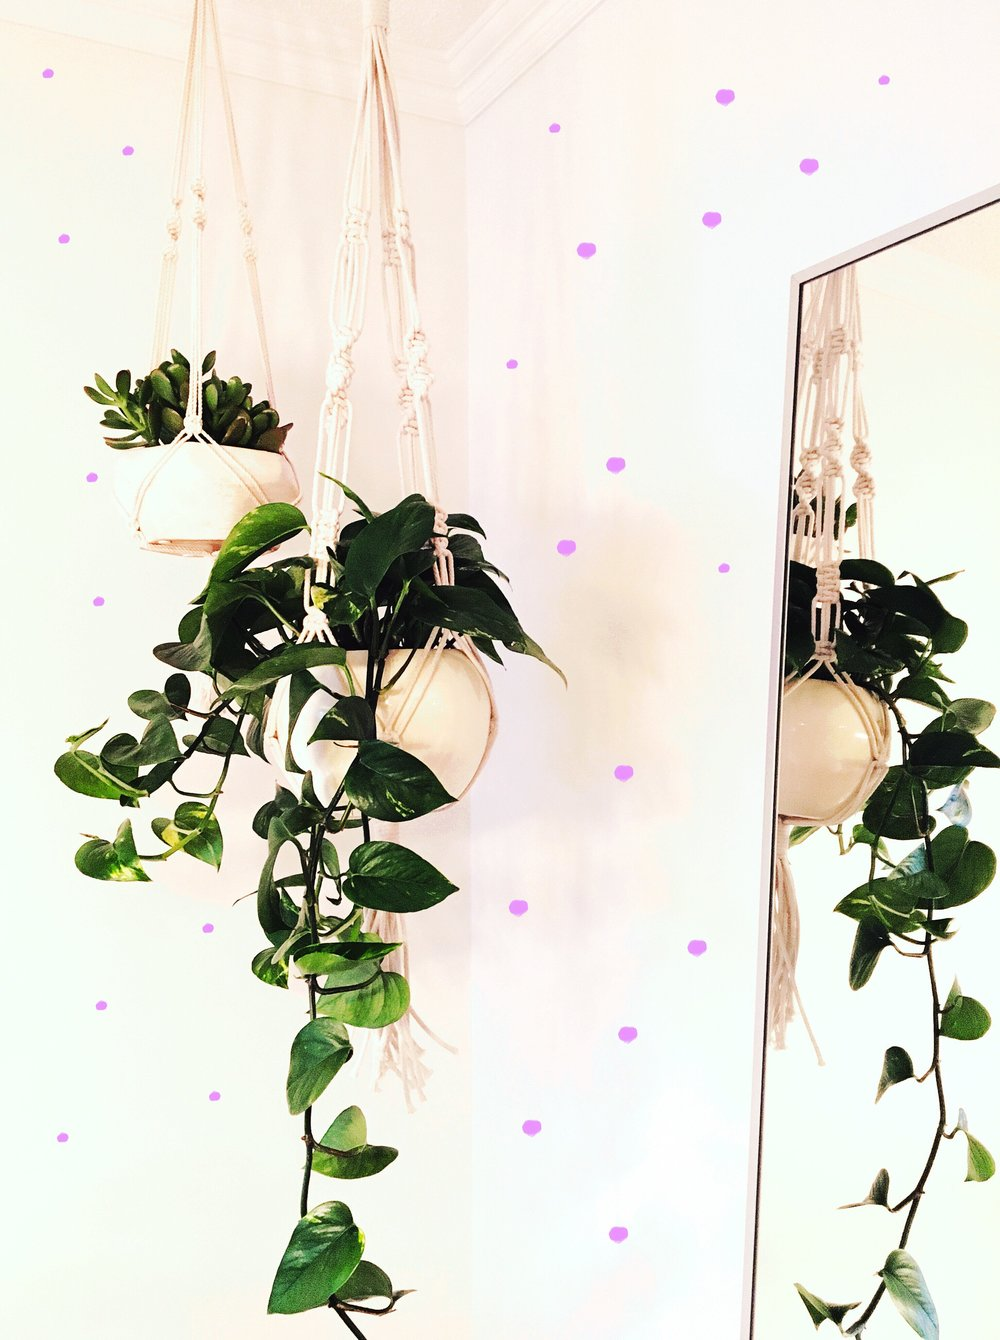 THE FUNKY FRESH / MACRAME HANGING PLANTS